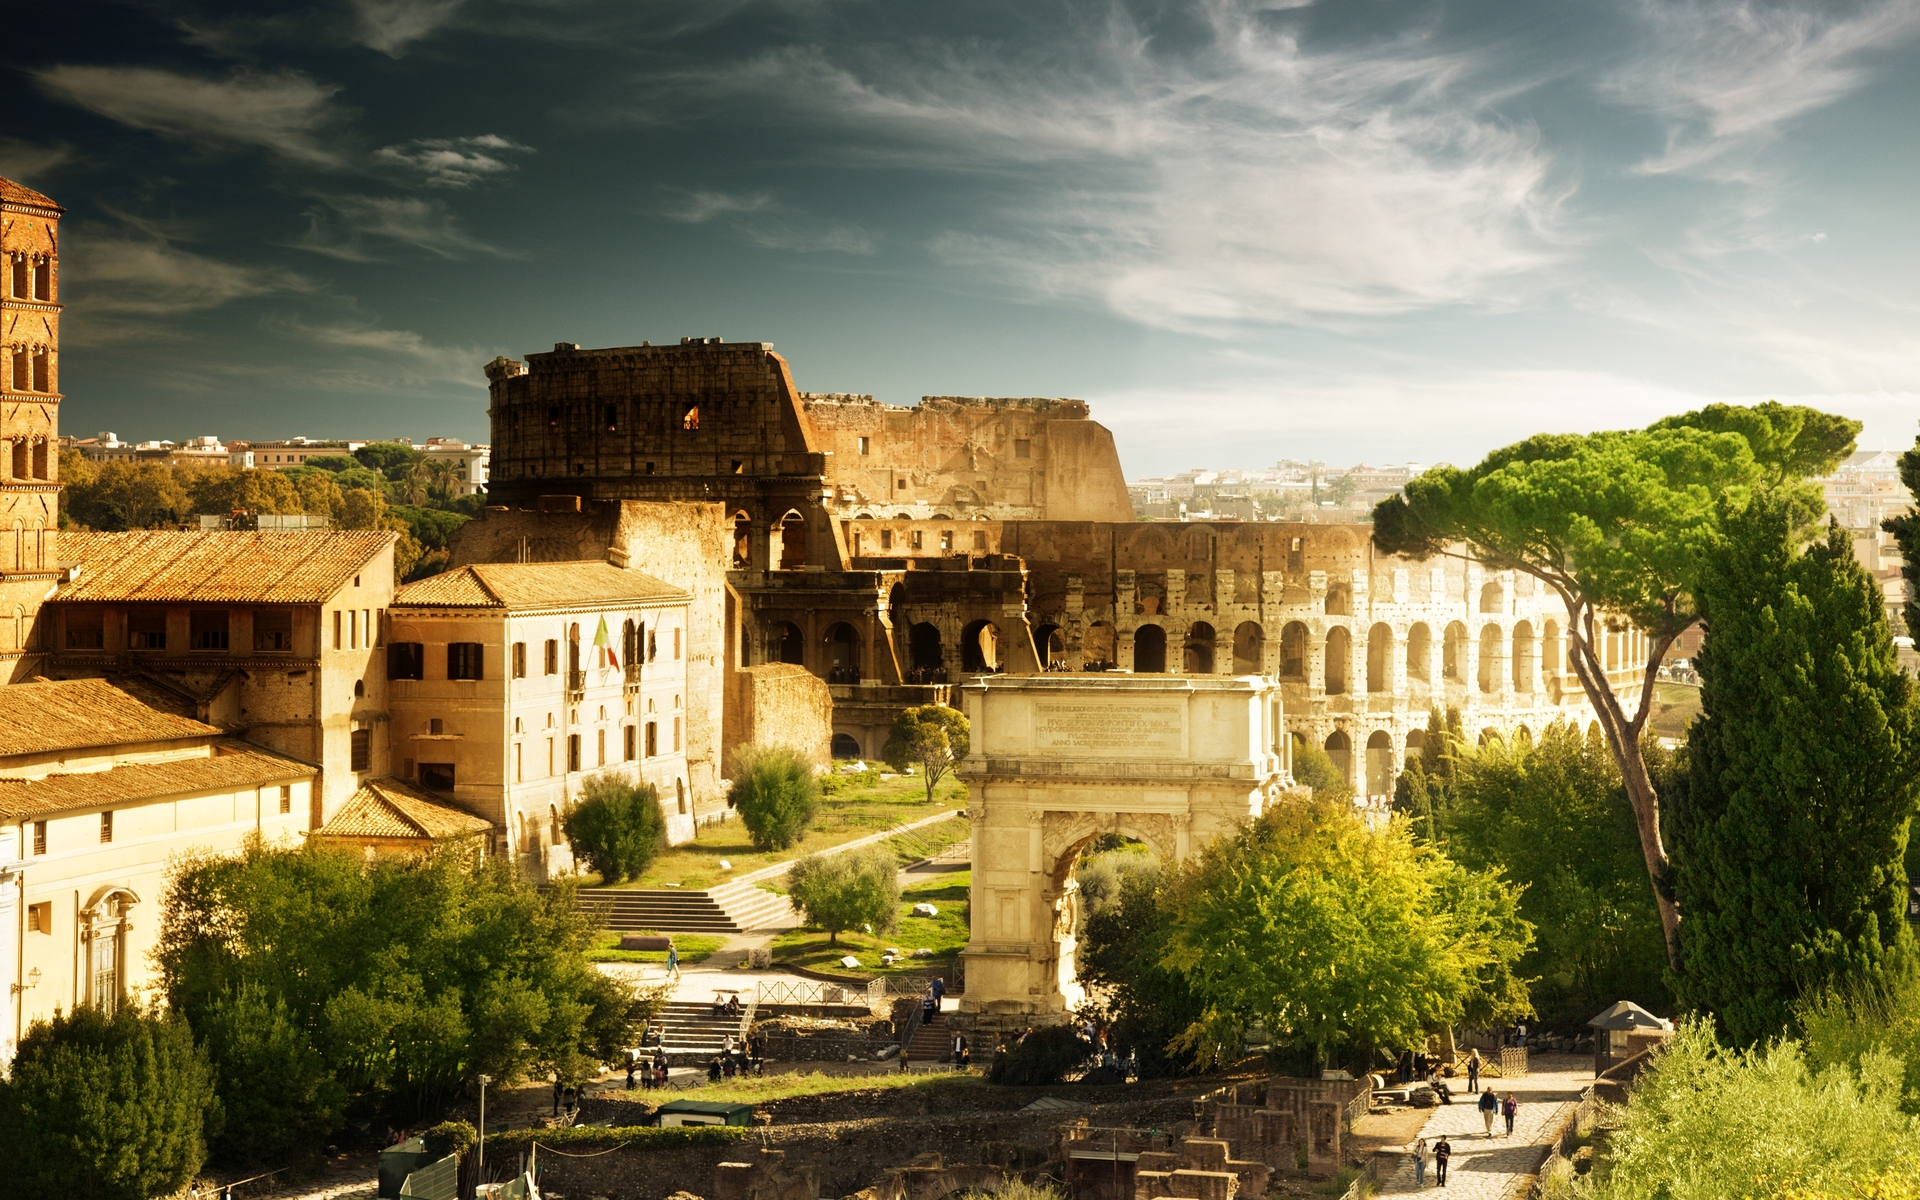 The Colosseum Rome Italy 1920 x 1200 Locality Photography 1920x1200